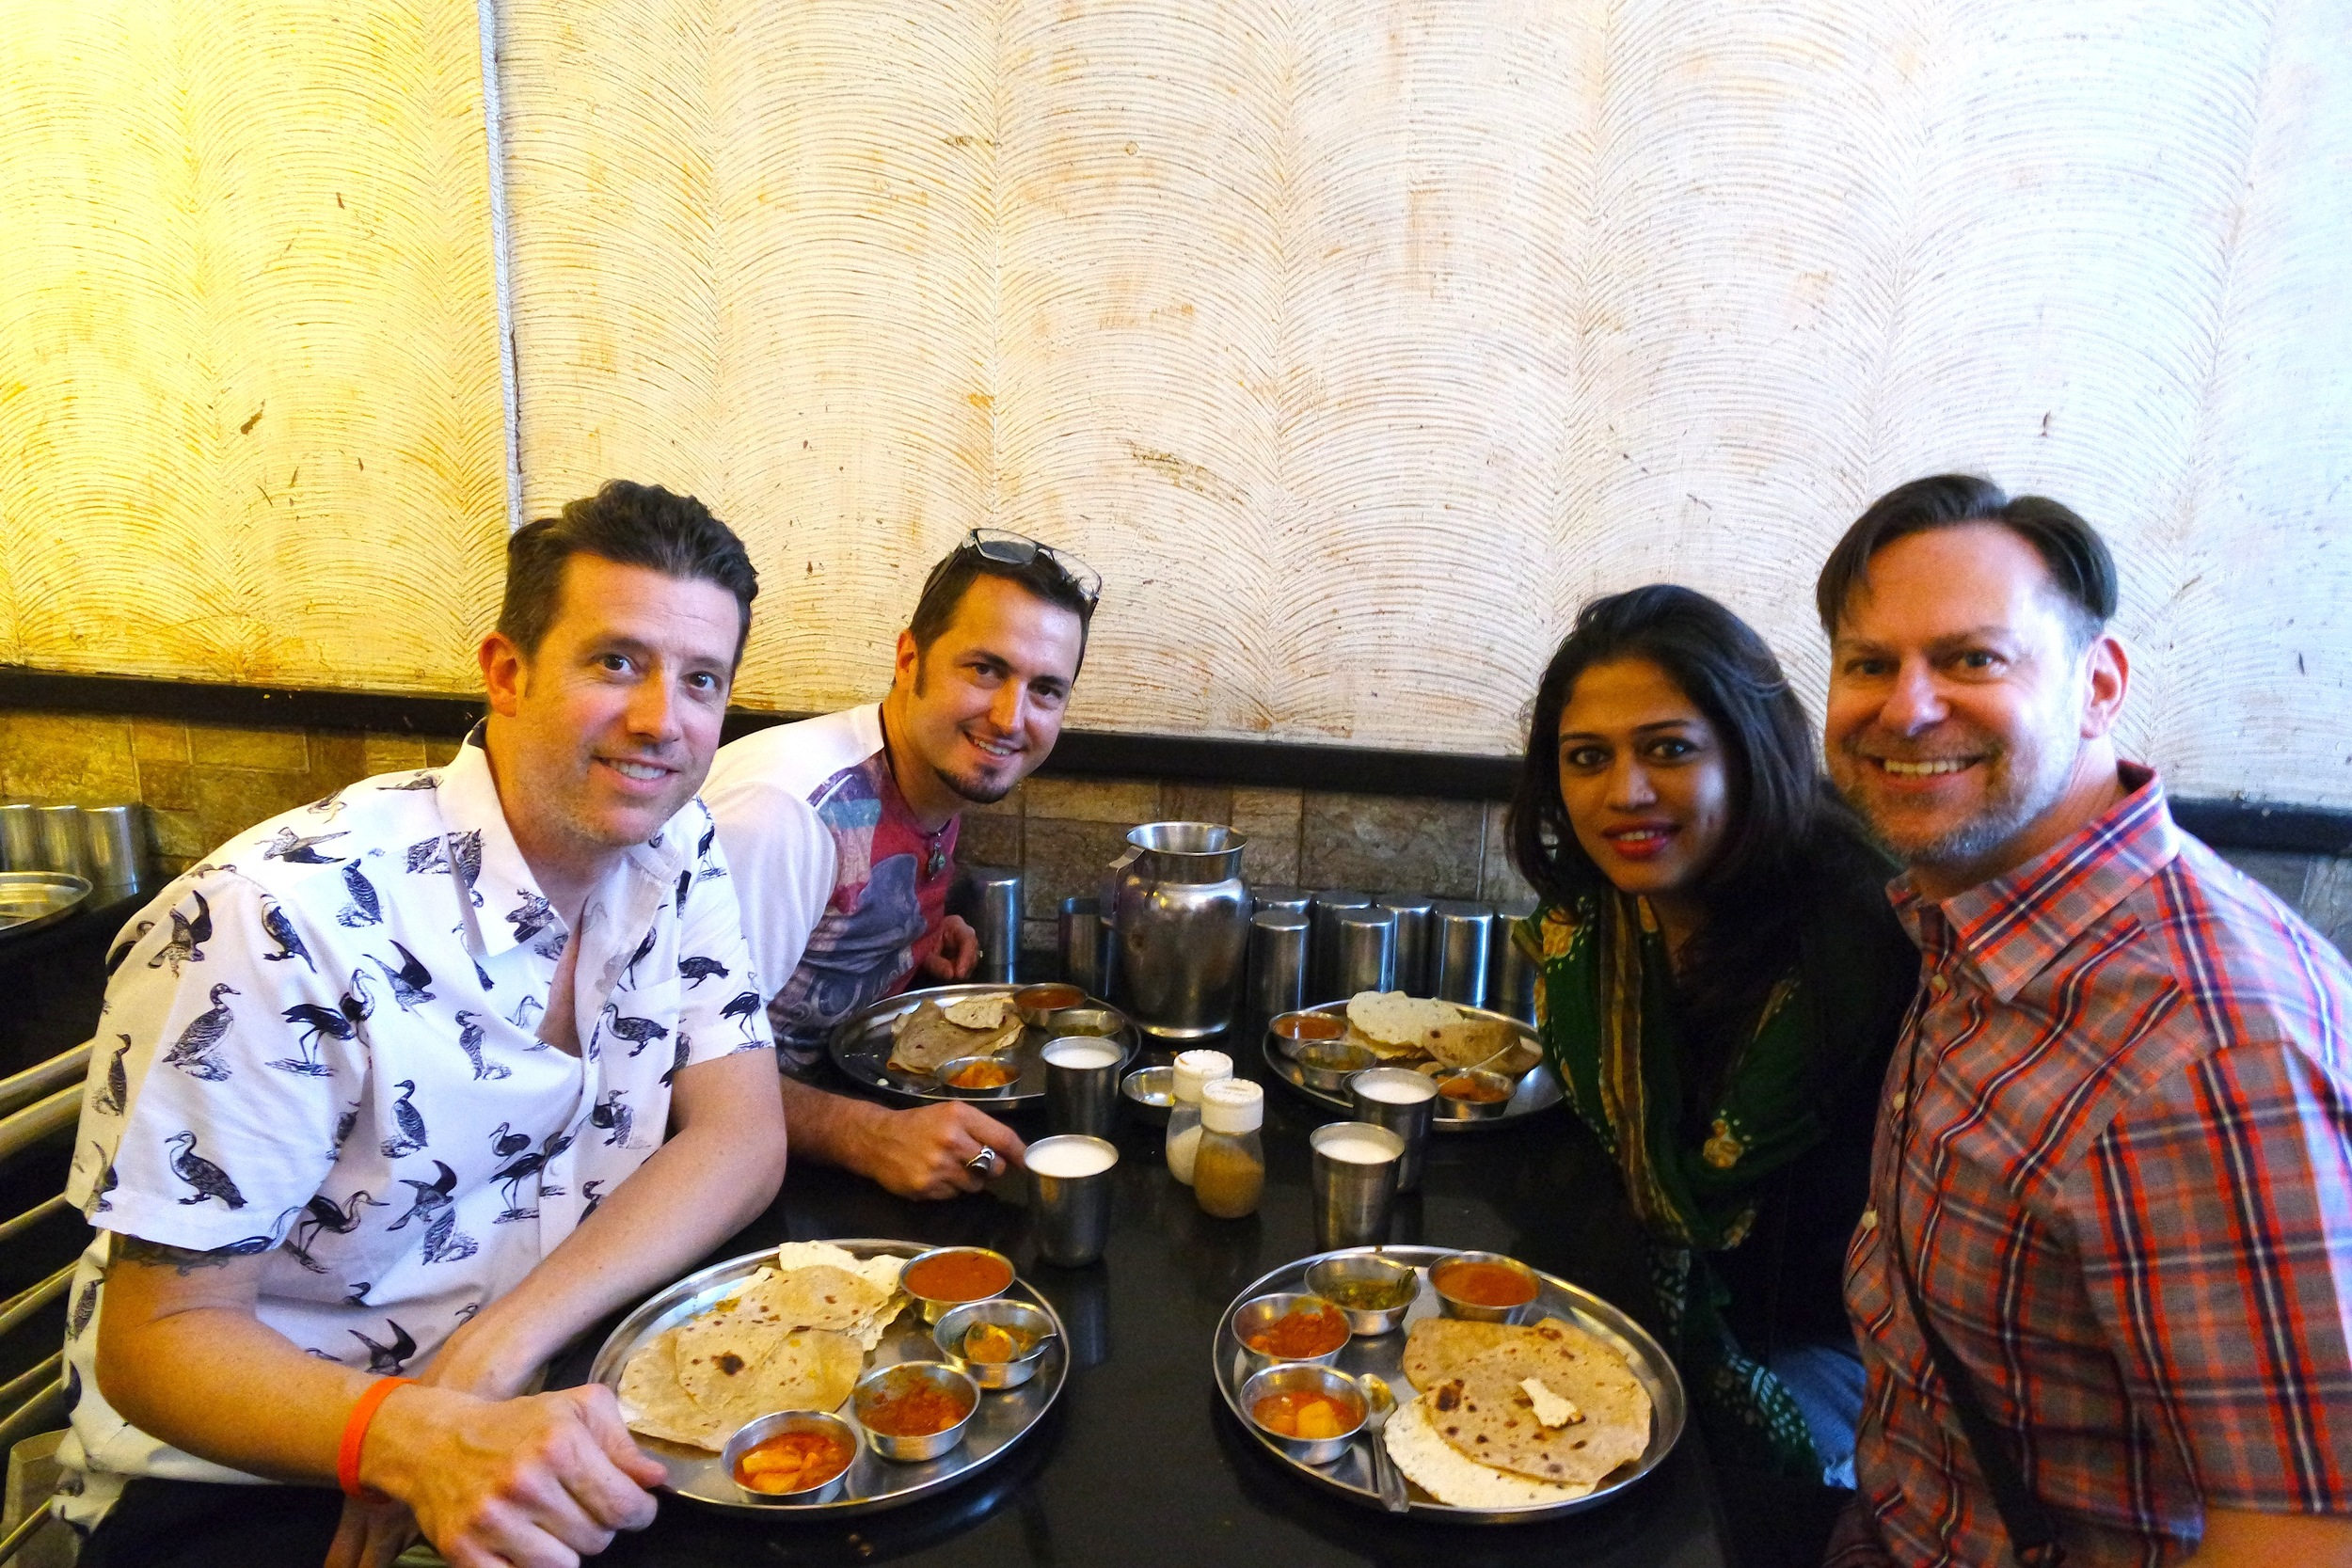 Wally, George, Manvi and Duke stuffing themselves silly on all-you-can-eat thali